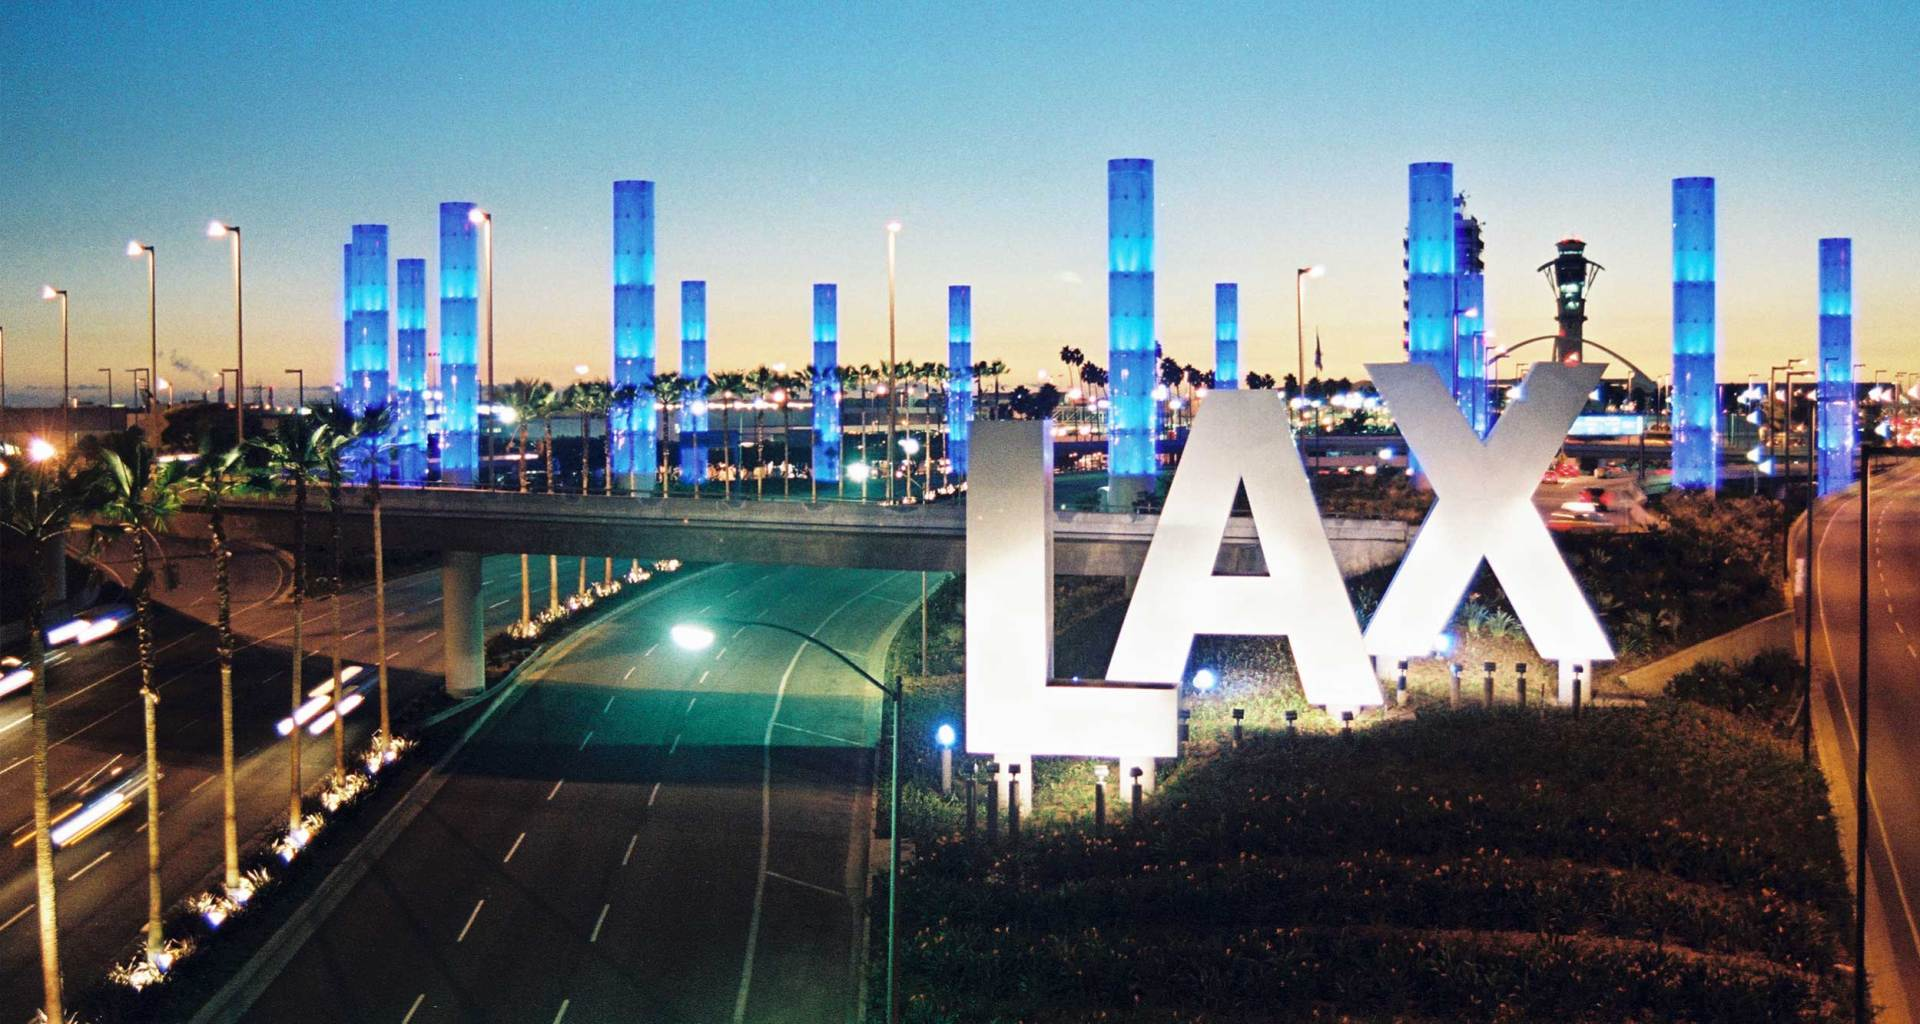 Large LAX sign outside the Los Angeles Airport.